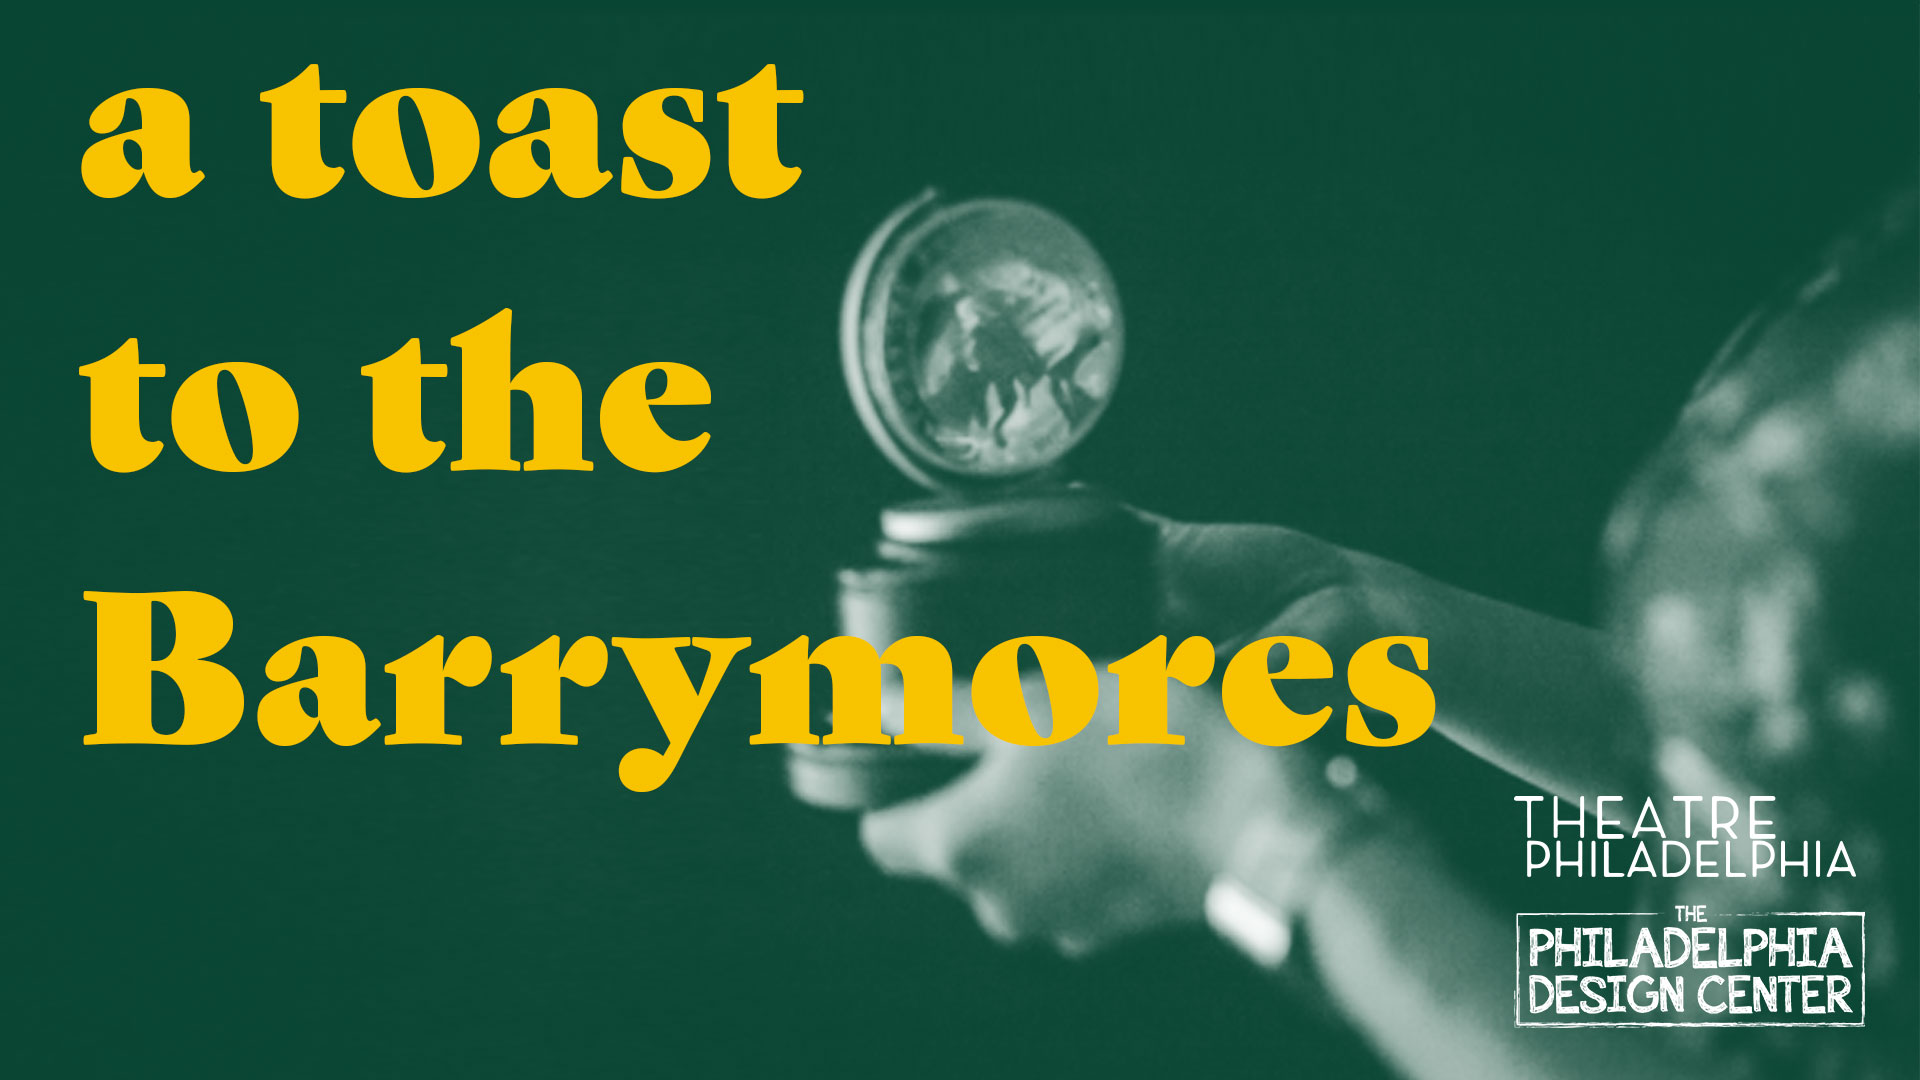 A toast to the Barrymores event banner